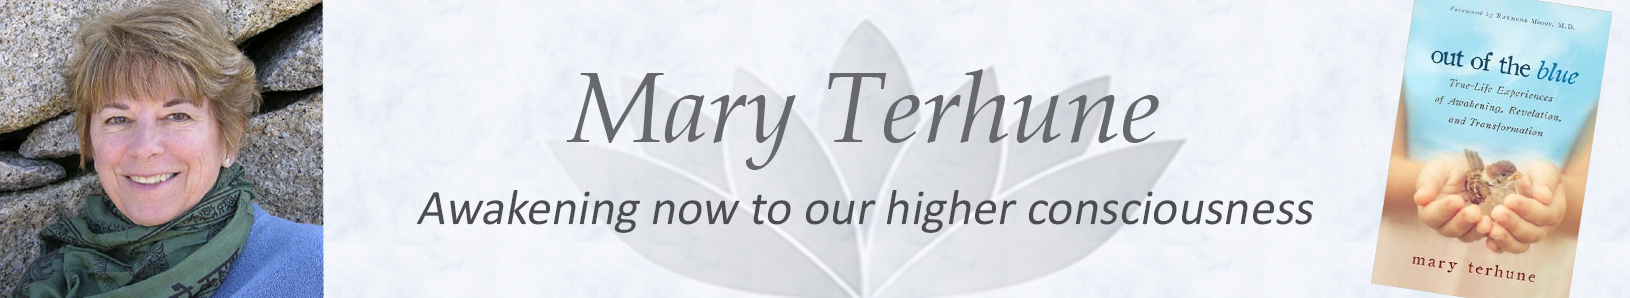 Mary Terhune Website